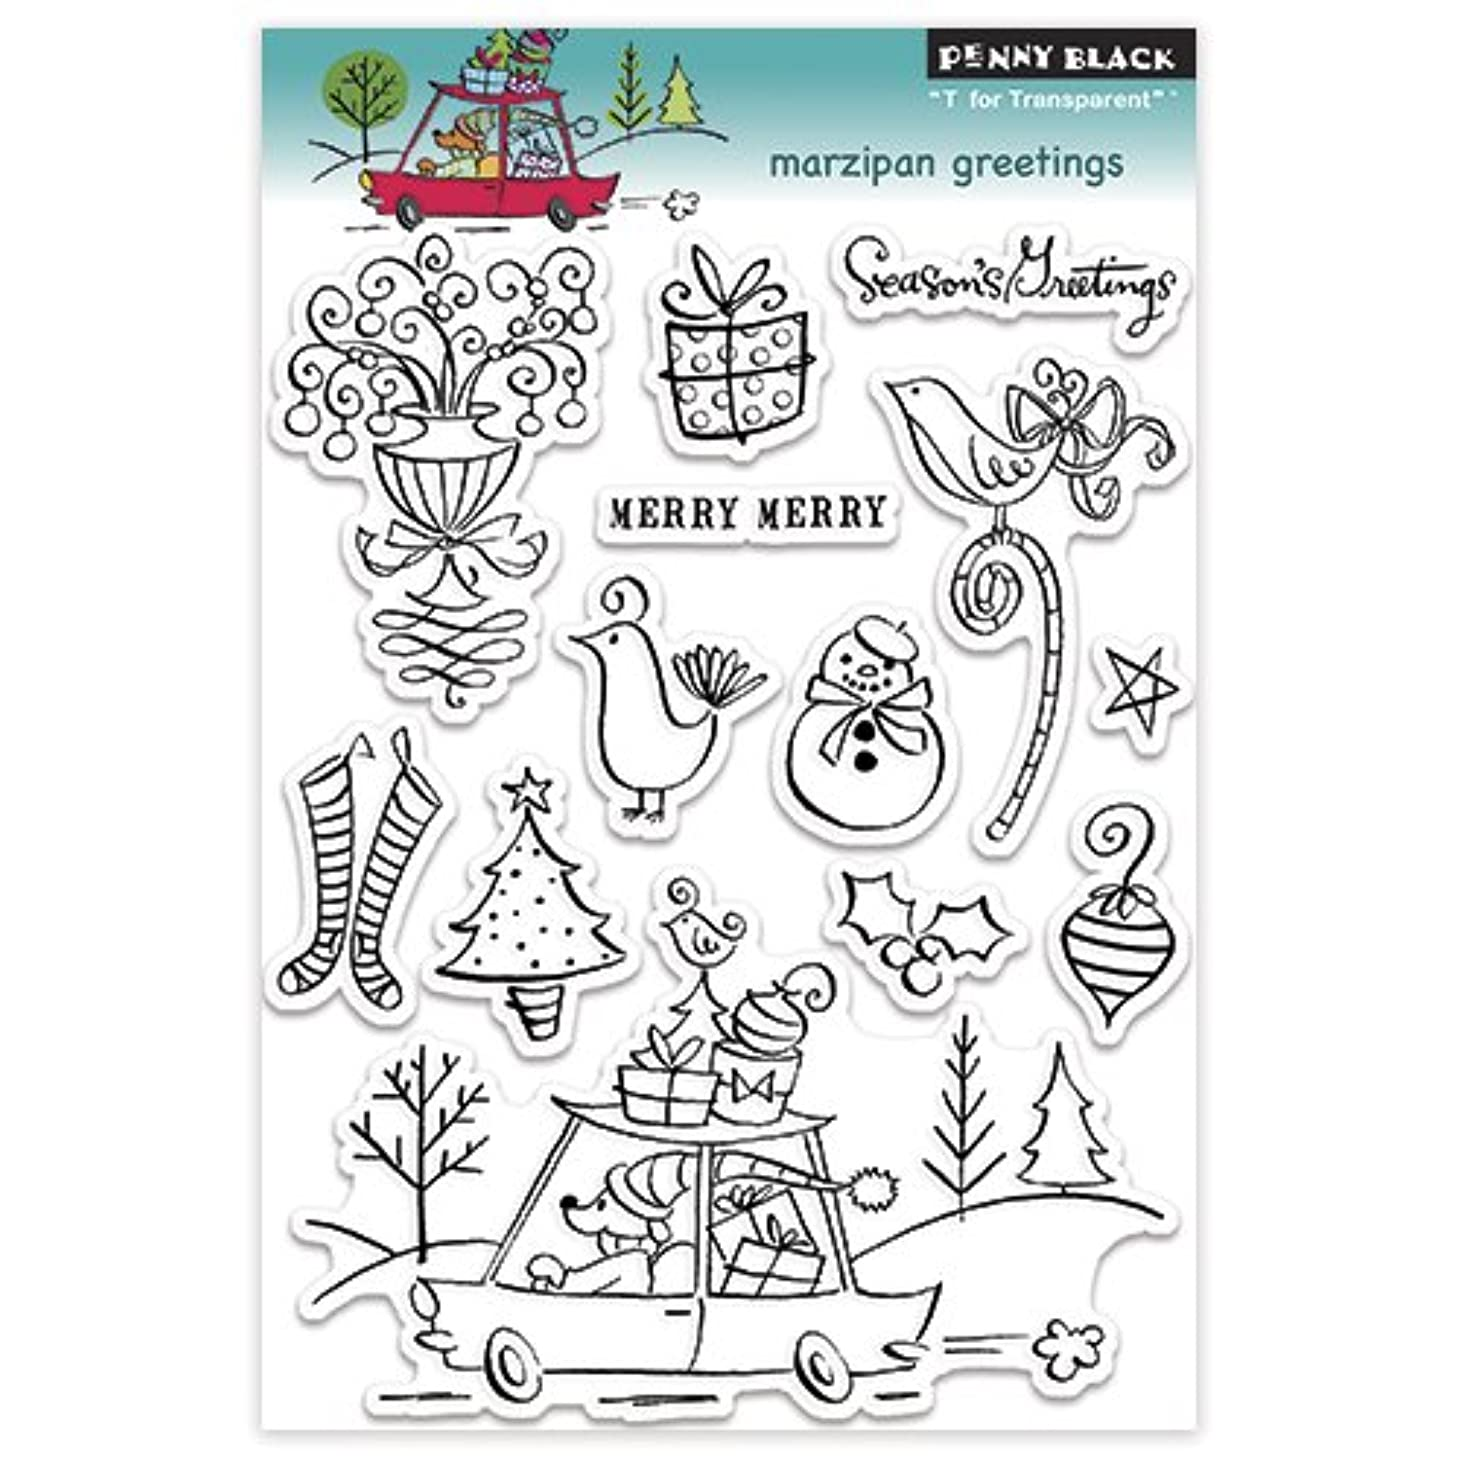 Penny Black 30-126 Marzipan Greetings Clear Stamp